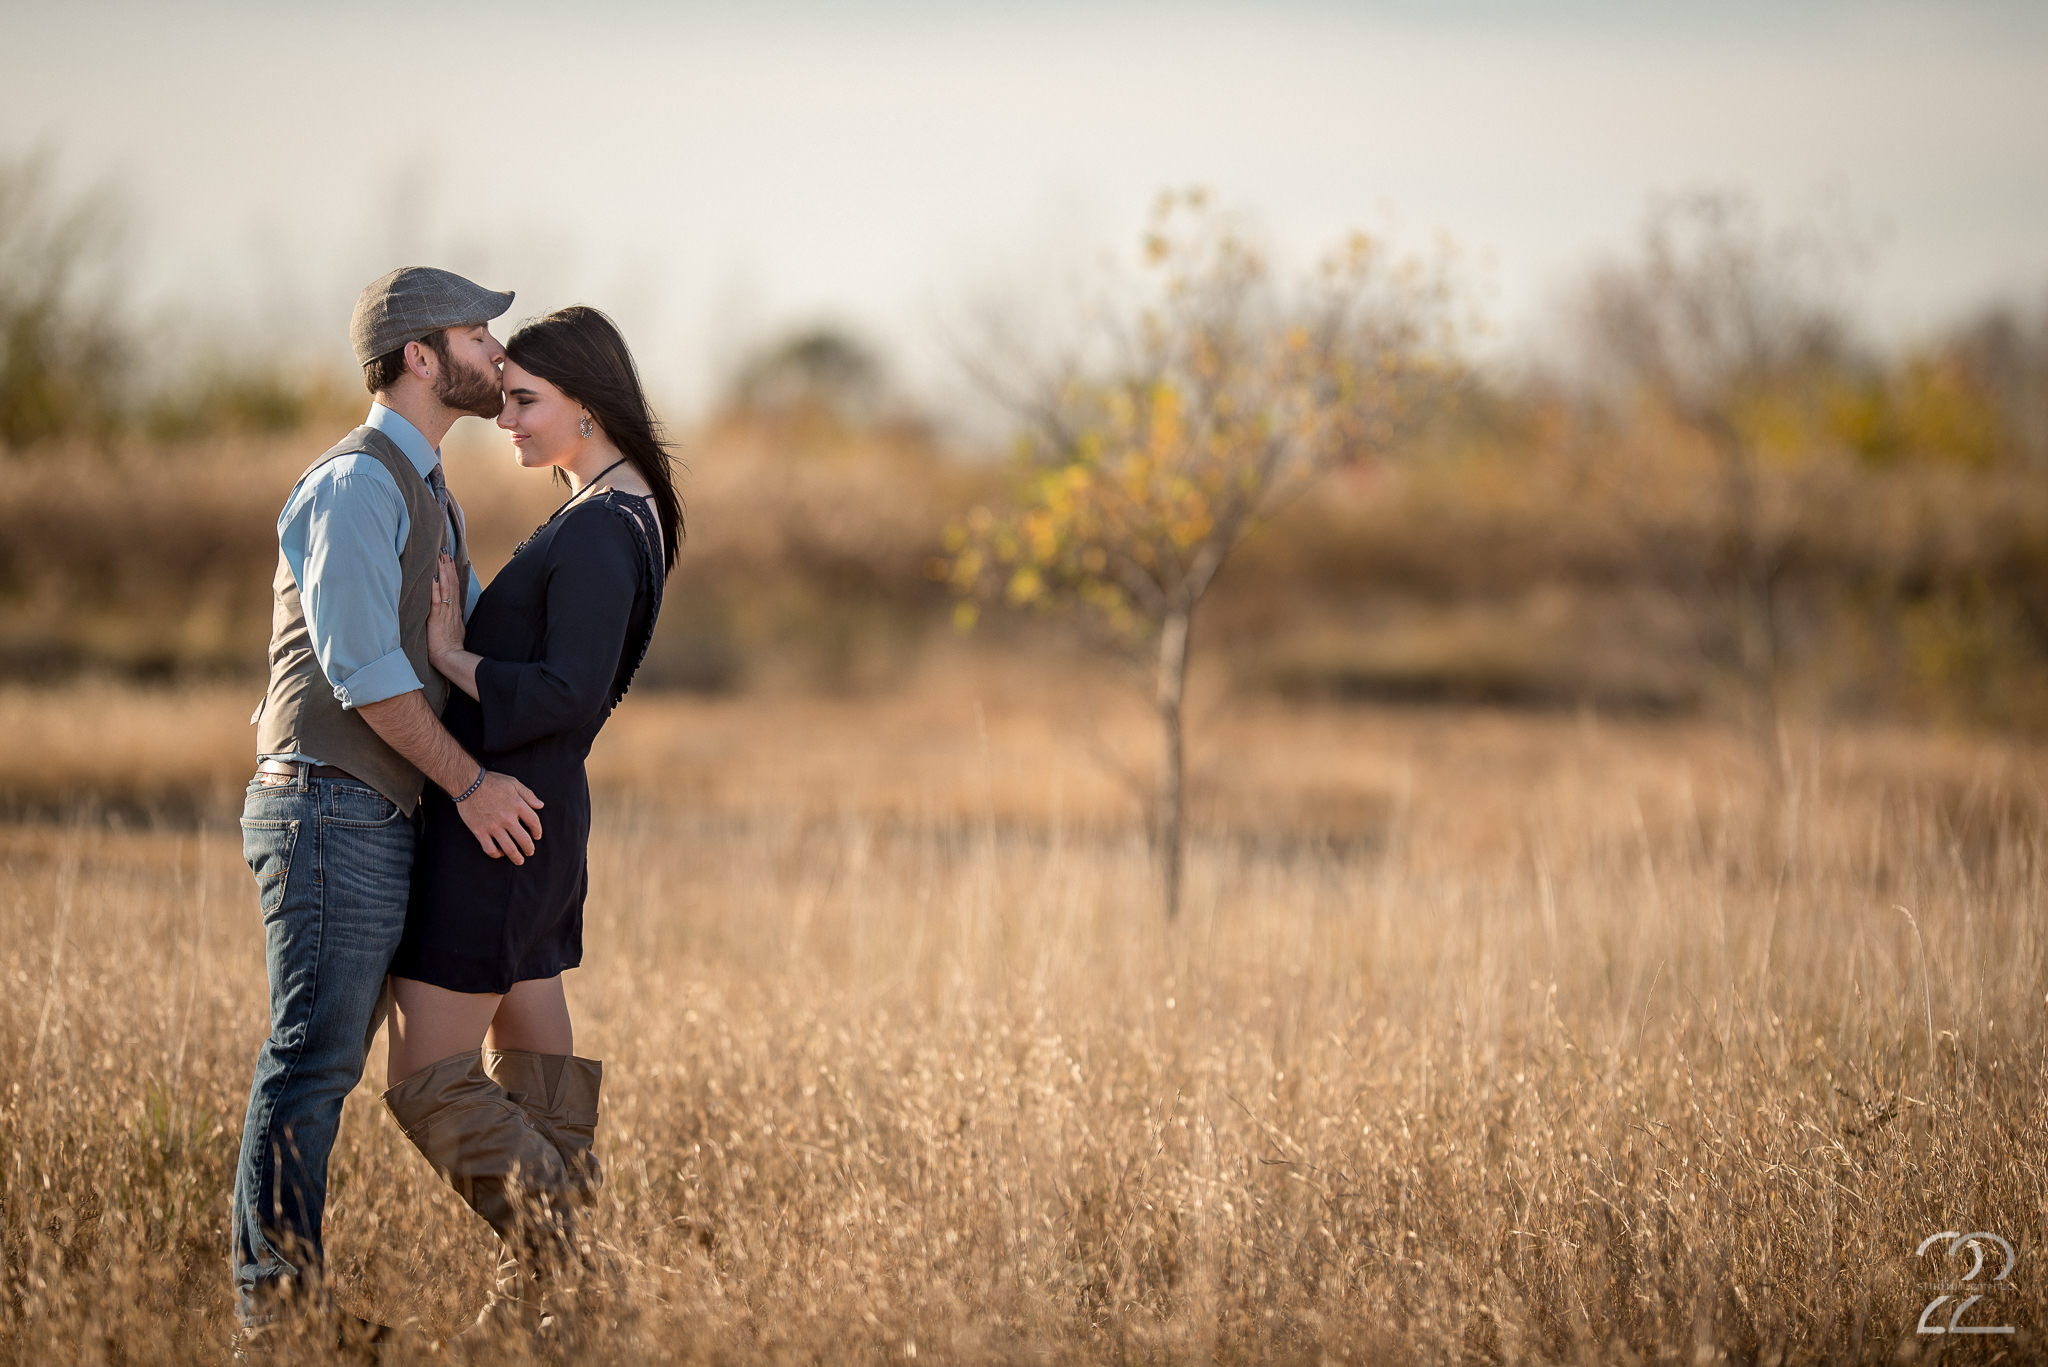 Man in jeans and vest kisses woman in dress in tall grass at Oakes Quarry Park by Dayton Wedding Photographer Studio 22 Photography